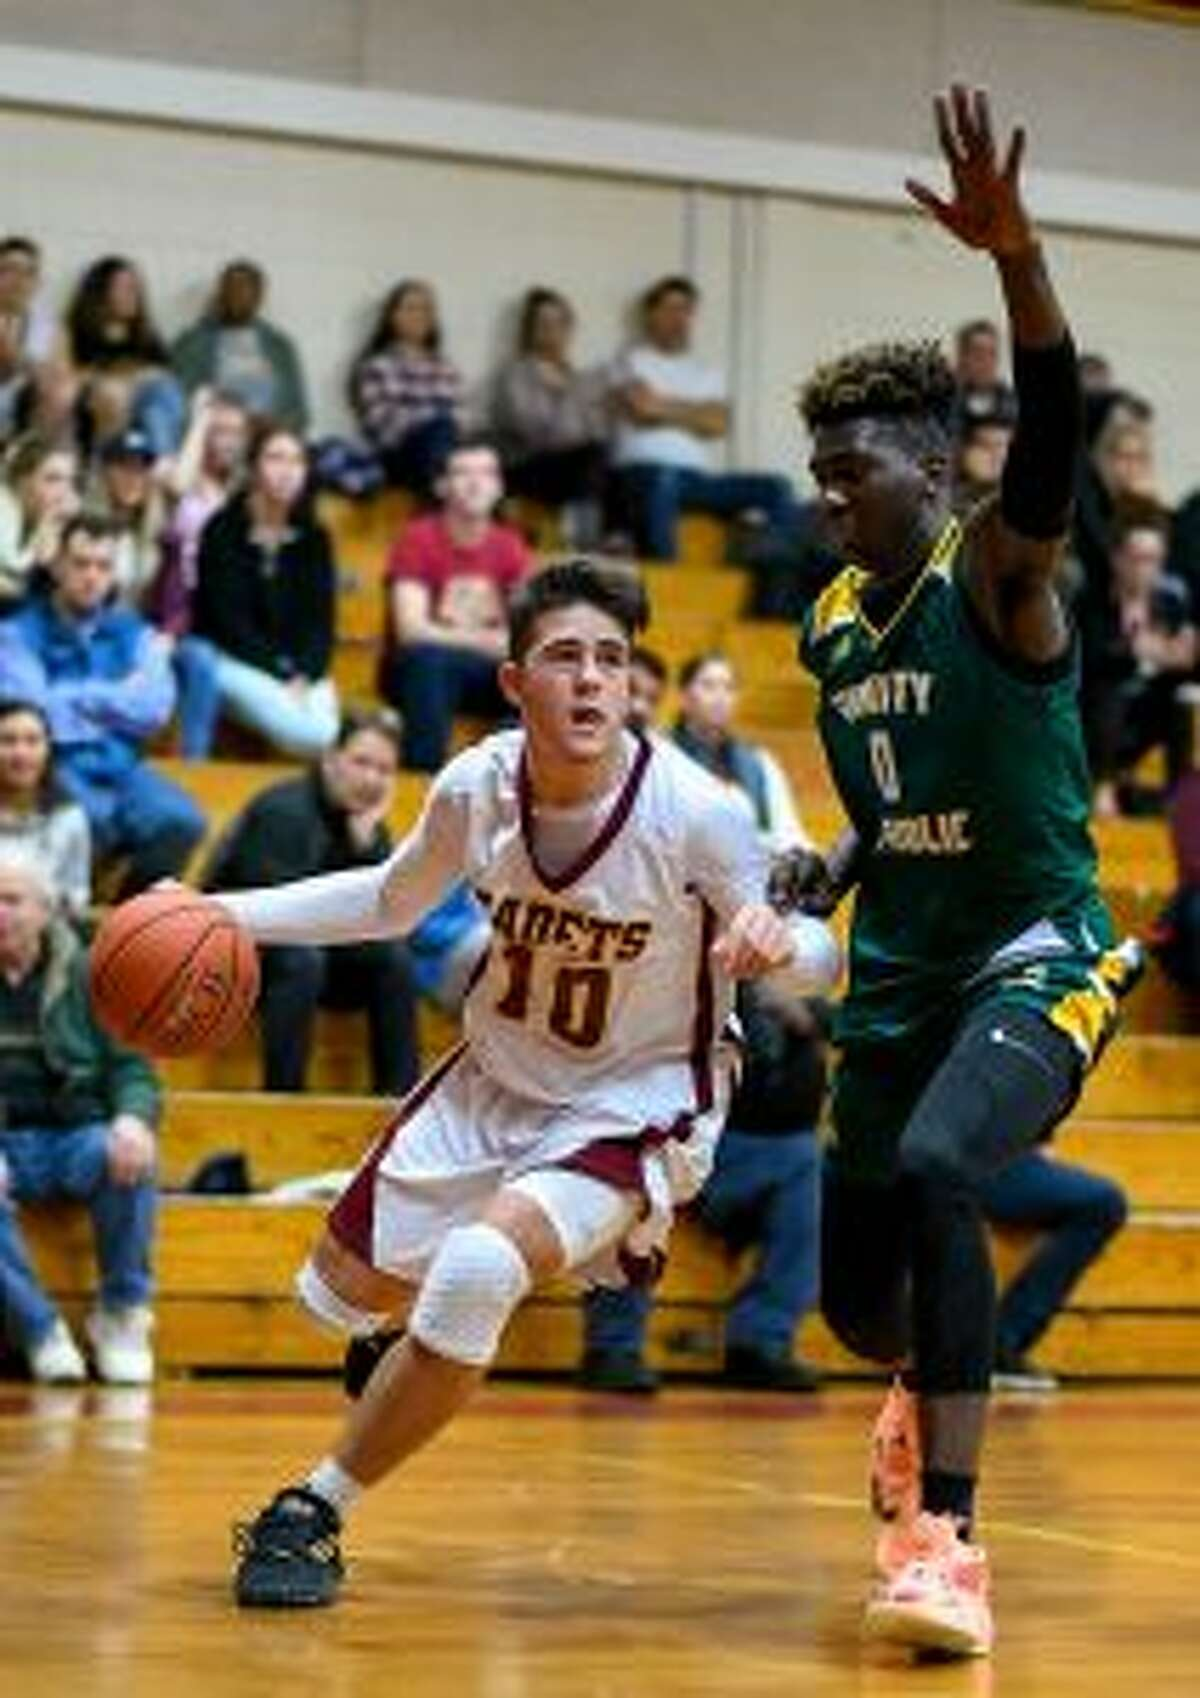 Paul Fabbri scored 14 points for the Cadets, with a pair of 3-point baskets.